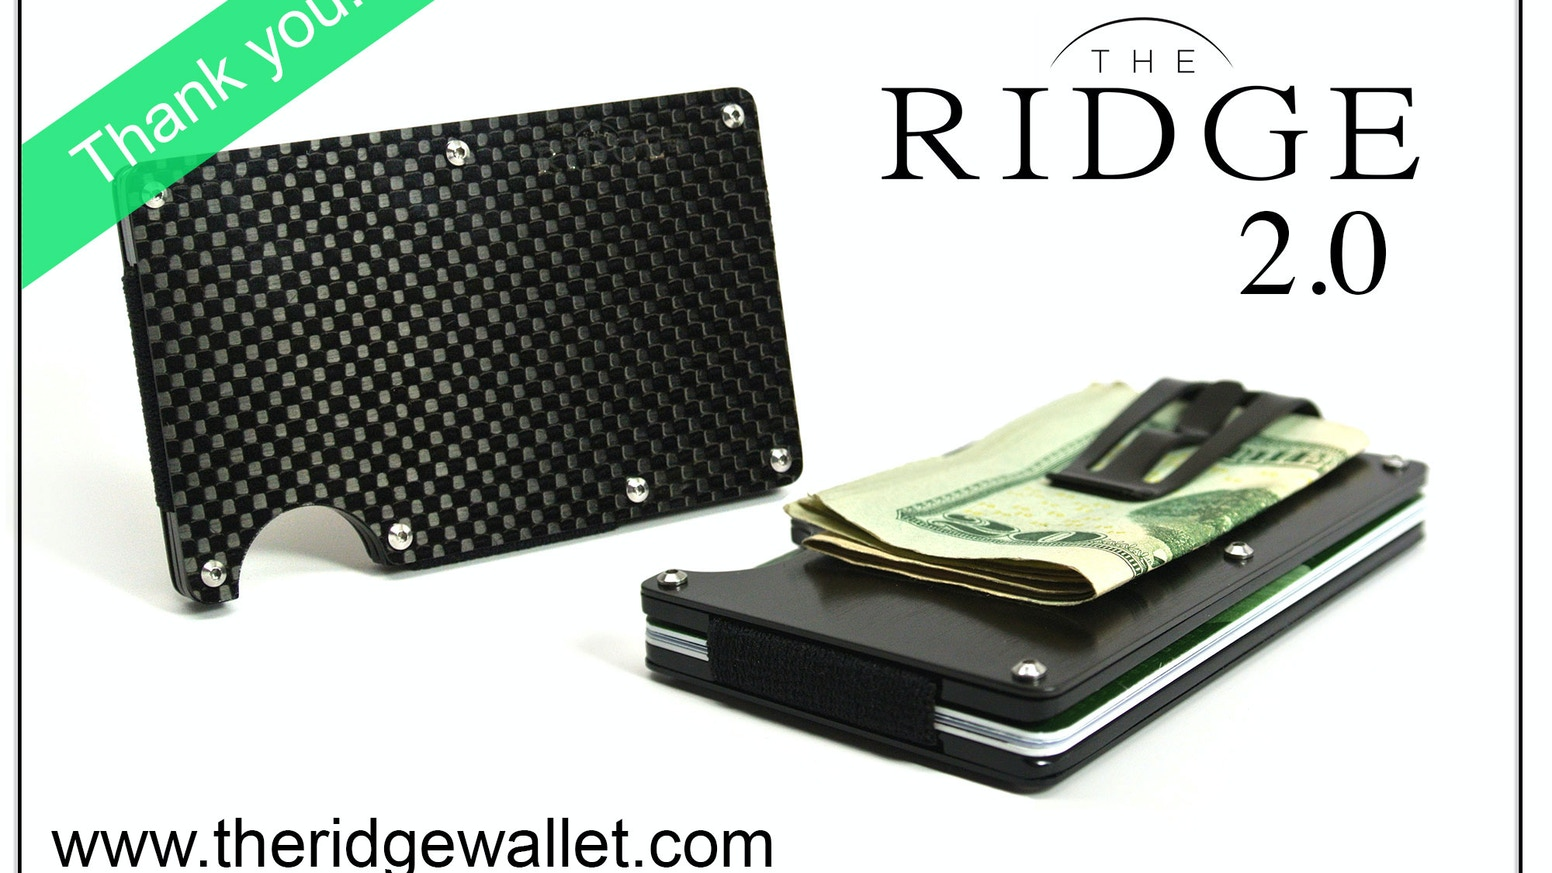 More than a Minimalist Wallet. The re-designed wallet system constructed from Aluminum, Titanium, and Carbon Fiber